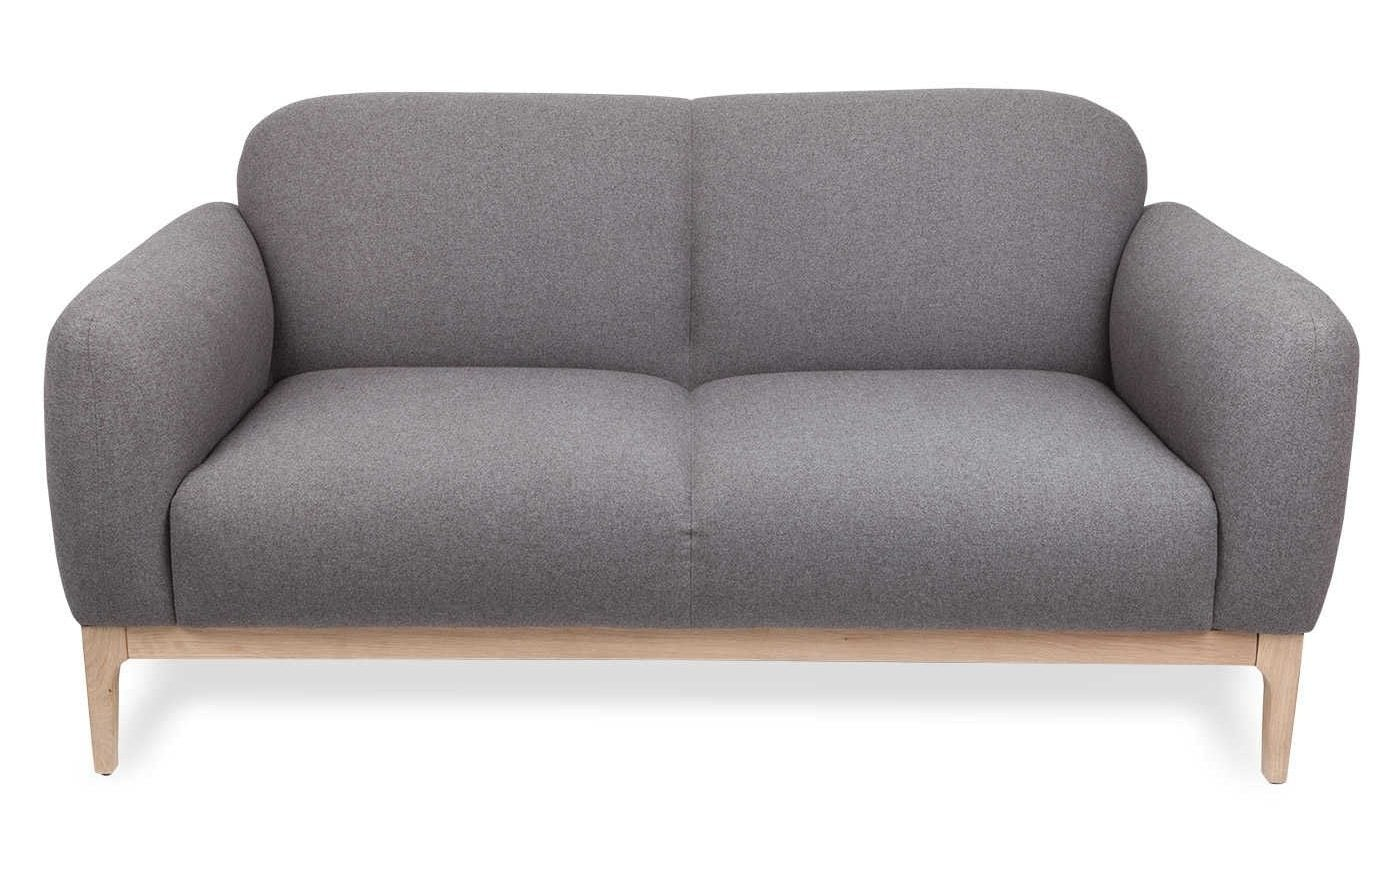 corner sofa bed east london charcoal sofas 17 of the best and couches to buy for all budgets morten two seater in flavio grey